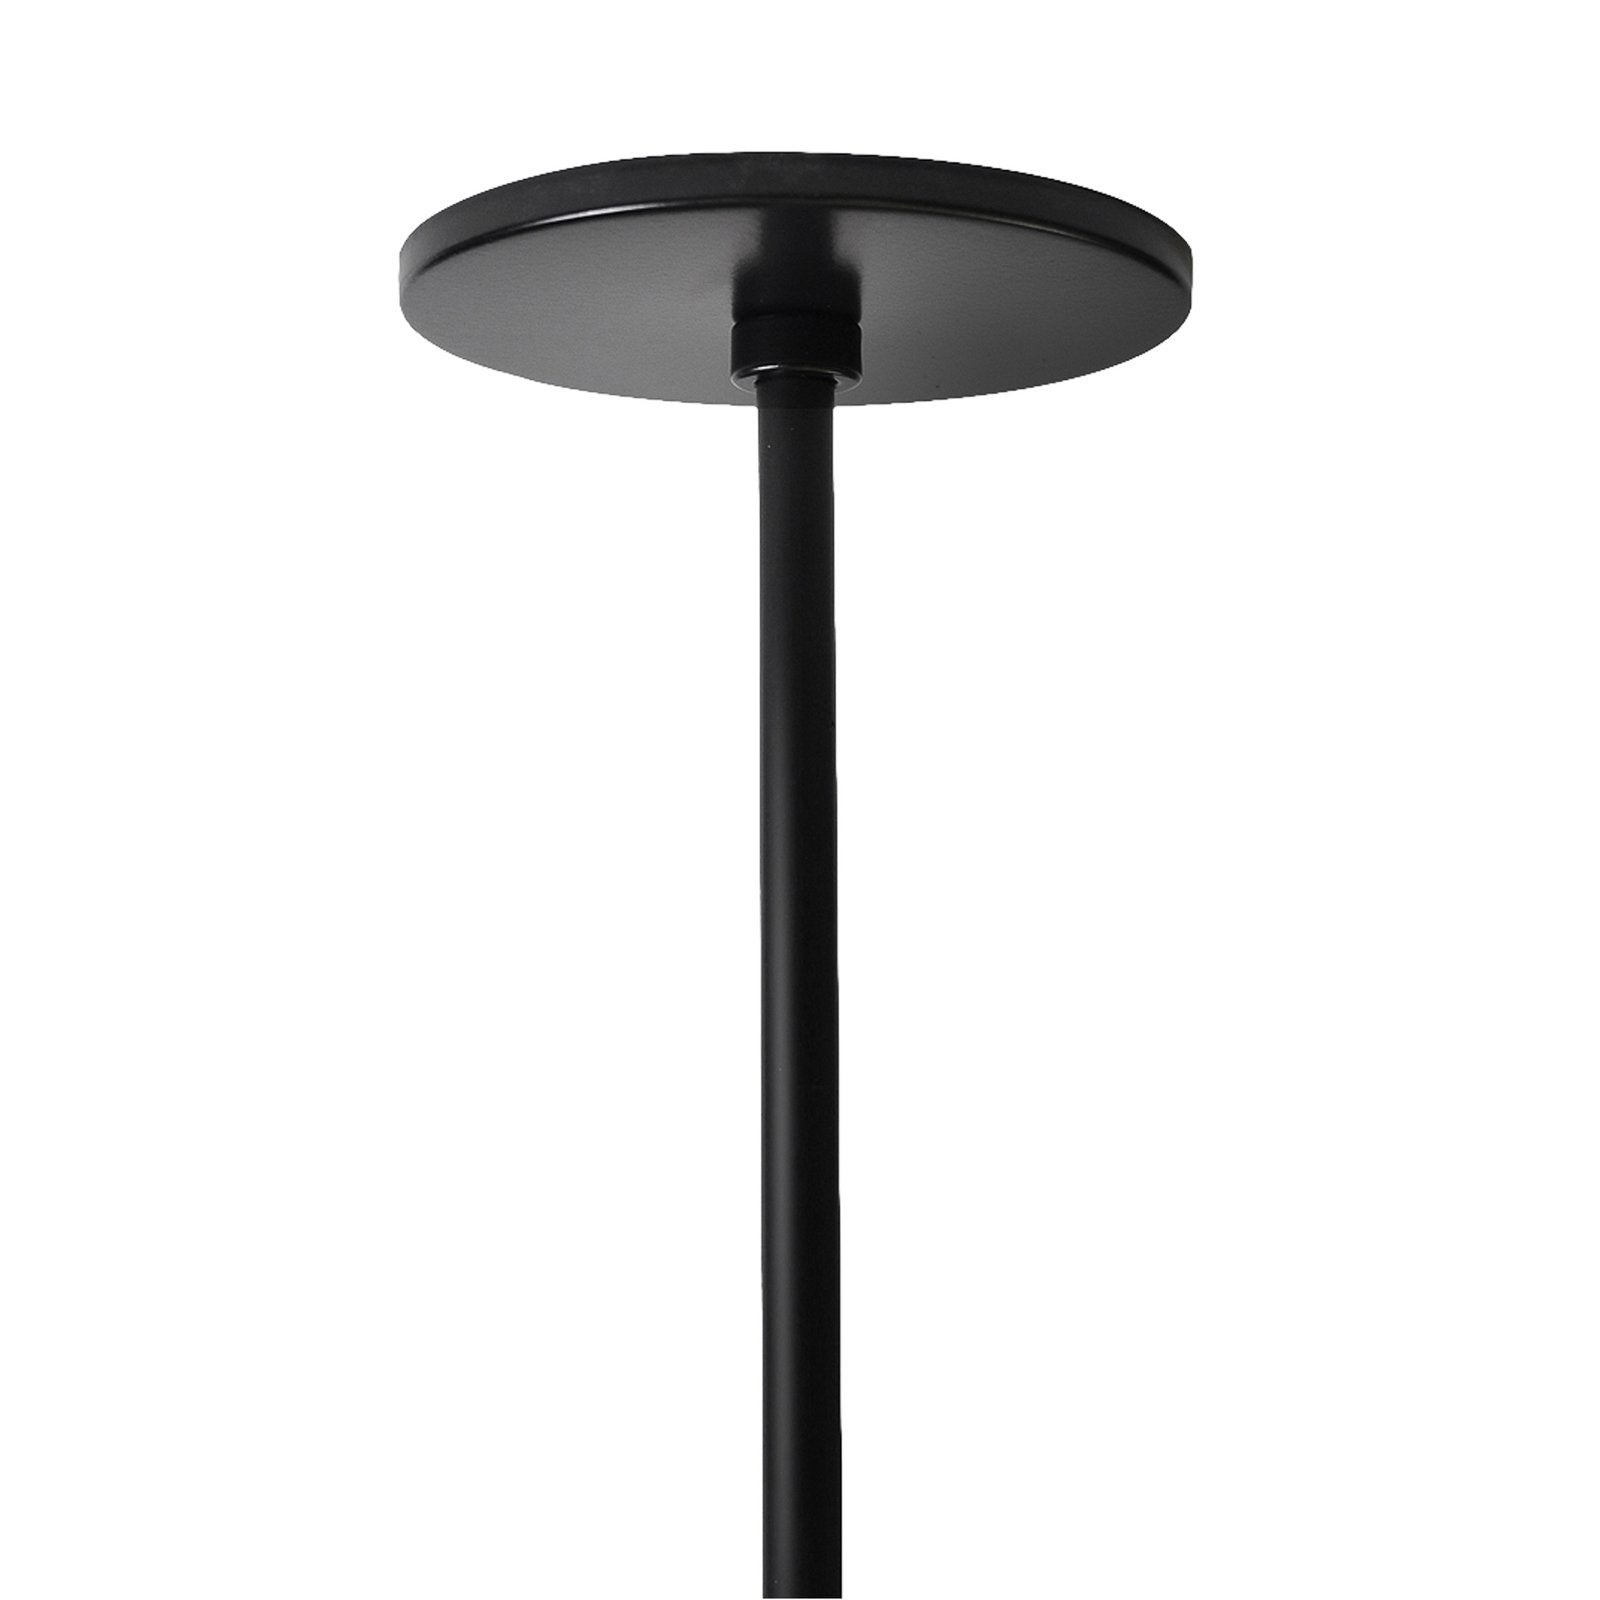 ... Lighting u003e Pendant - Dome Light In Black ...  sc 1 st  Consort & Dome Light in Black